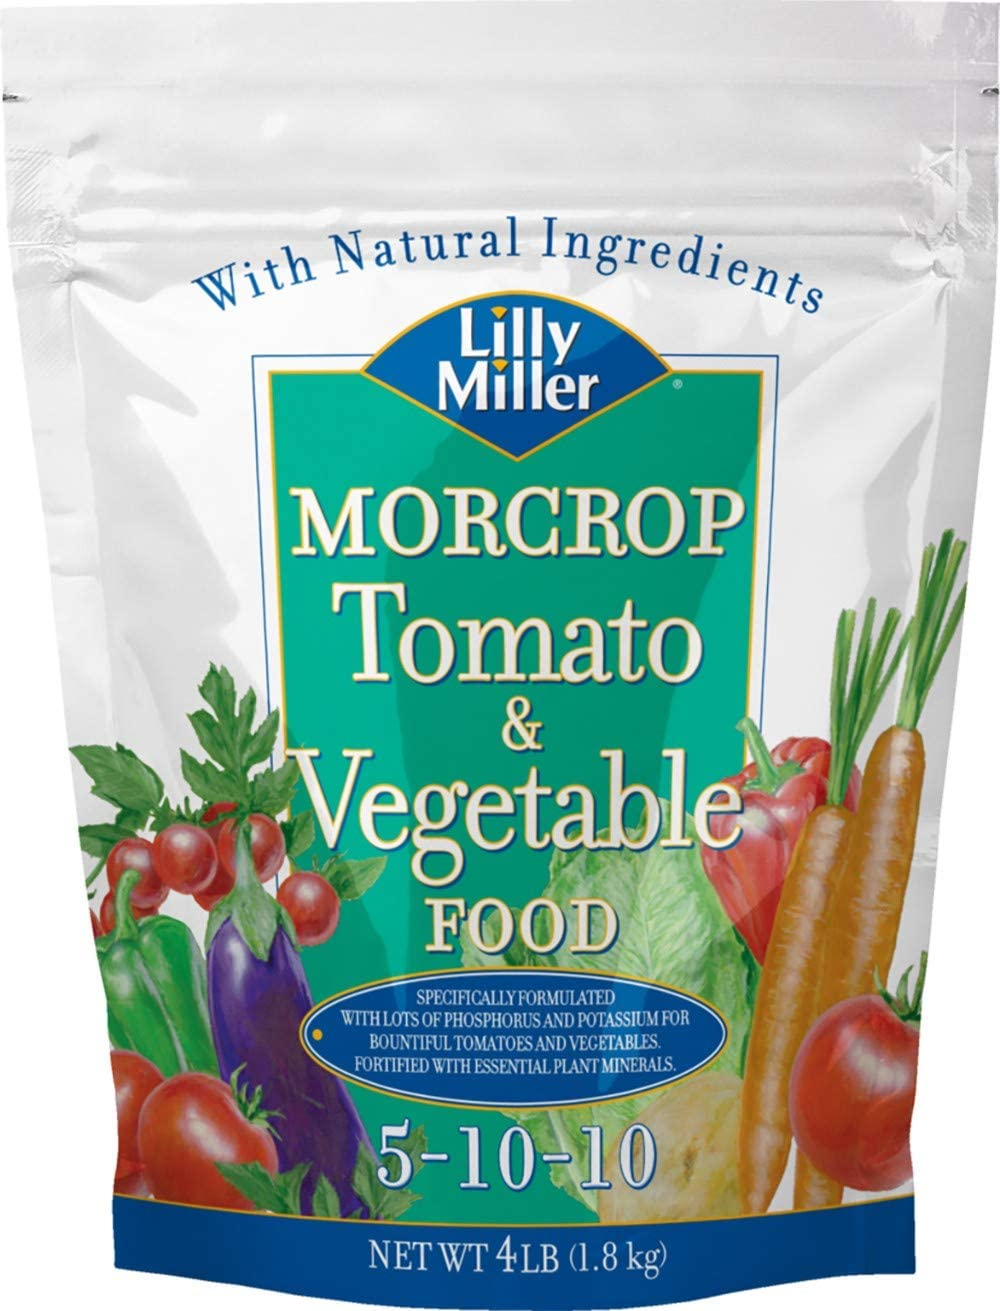 Lilly Miller Morcrop Tomato & Vegetable Food 5-10-10 4lb